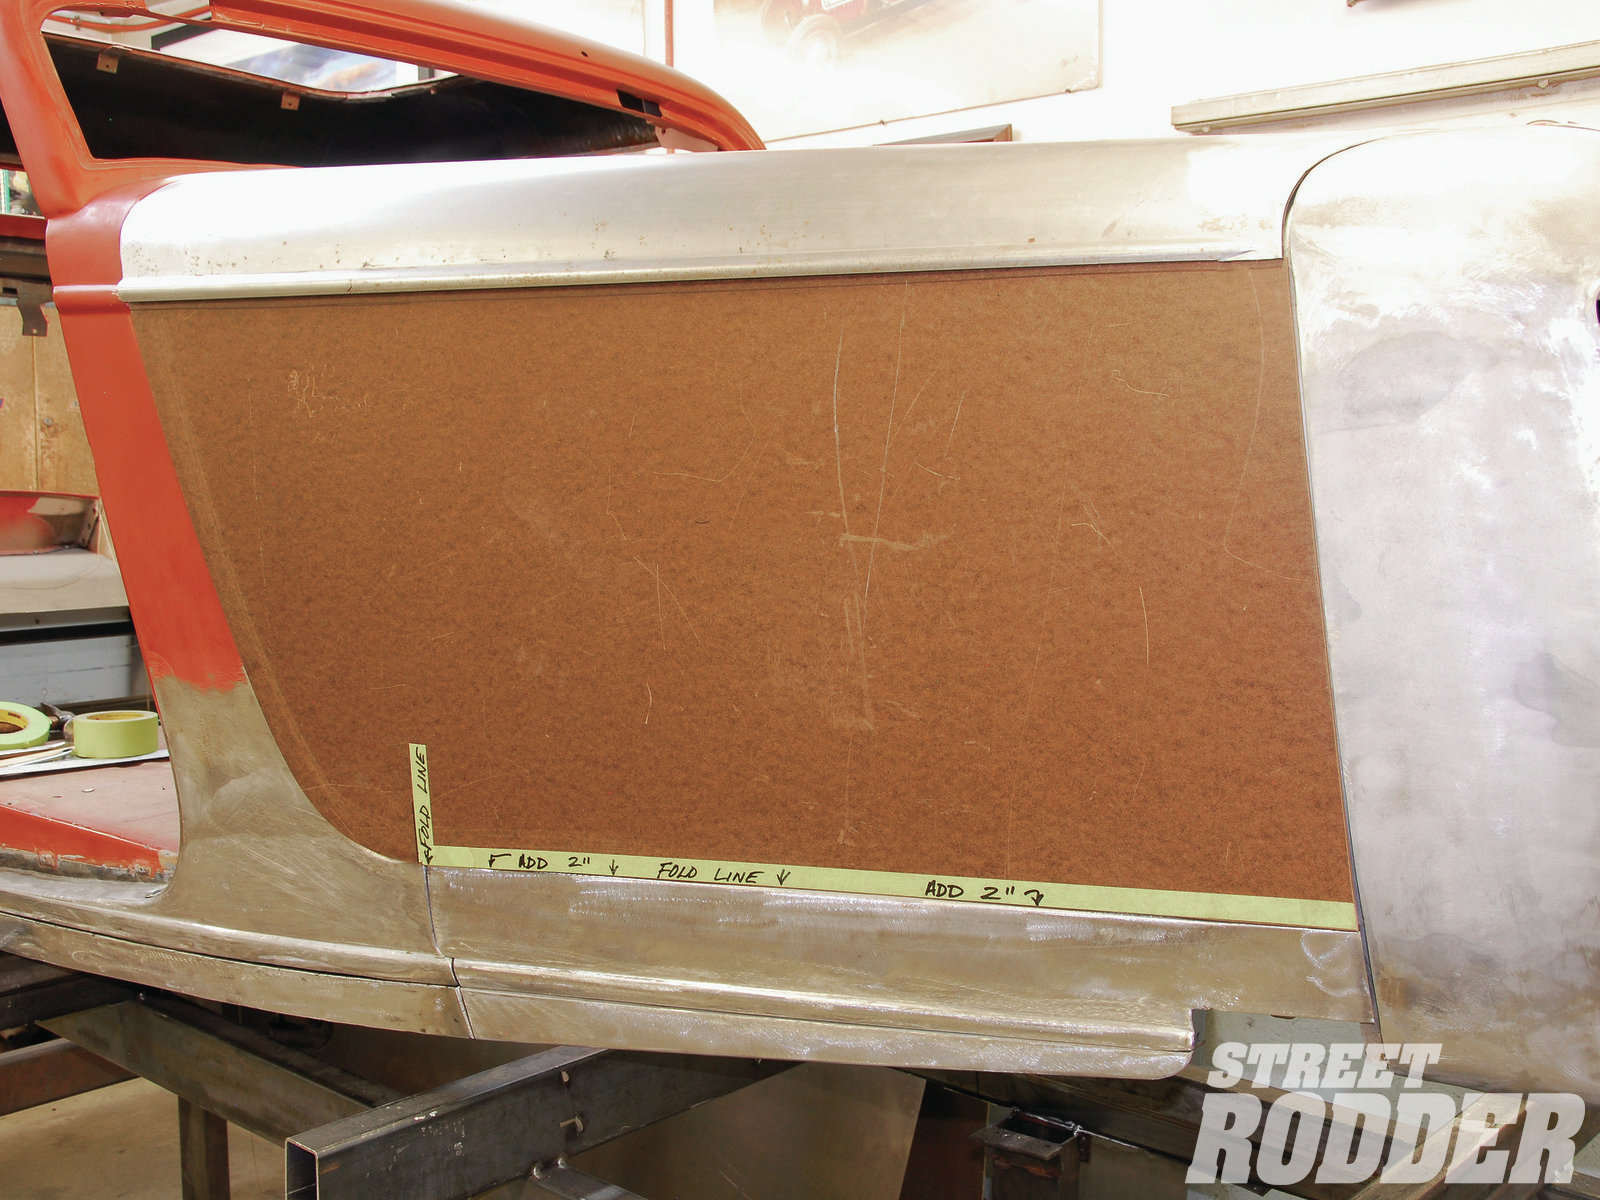 14| From an additional angle you can see just how well the Masonite hood side fits to the frontend sheetmetal.